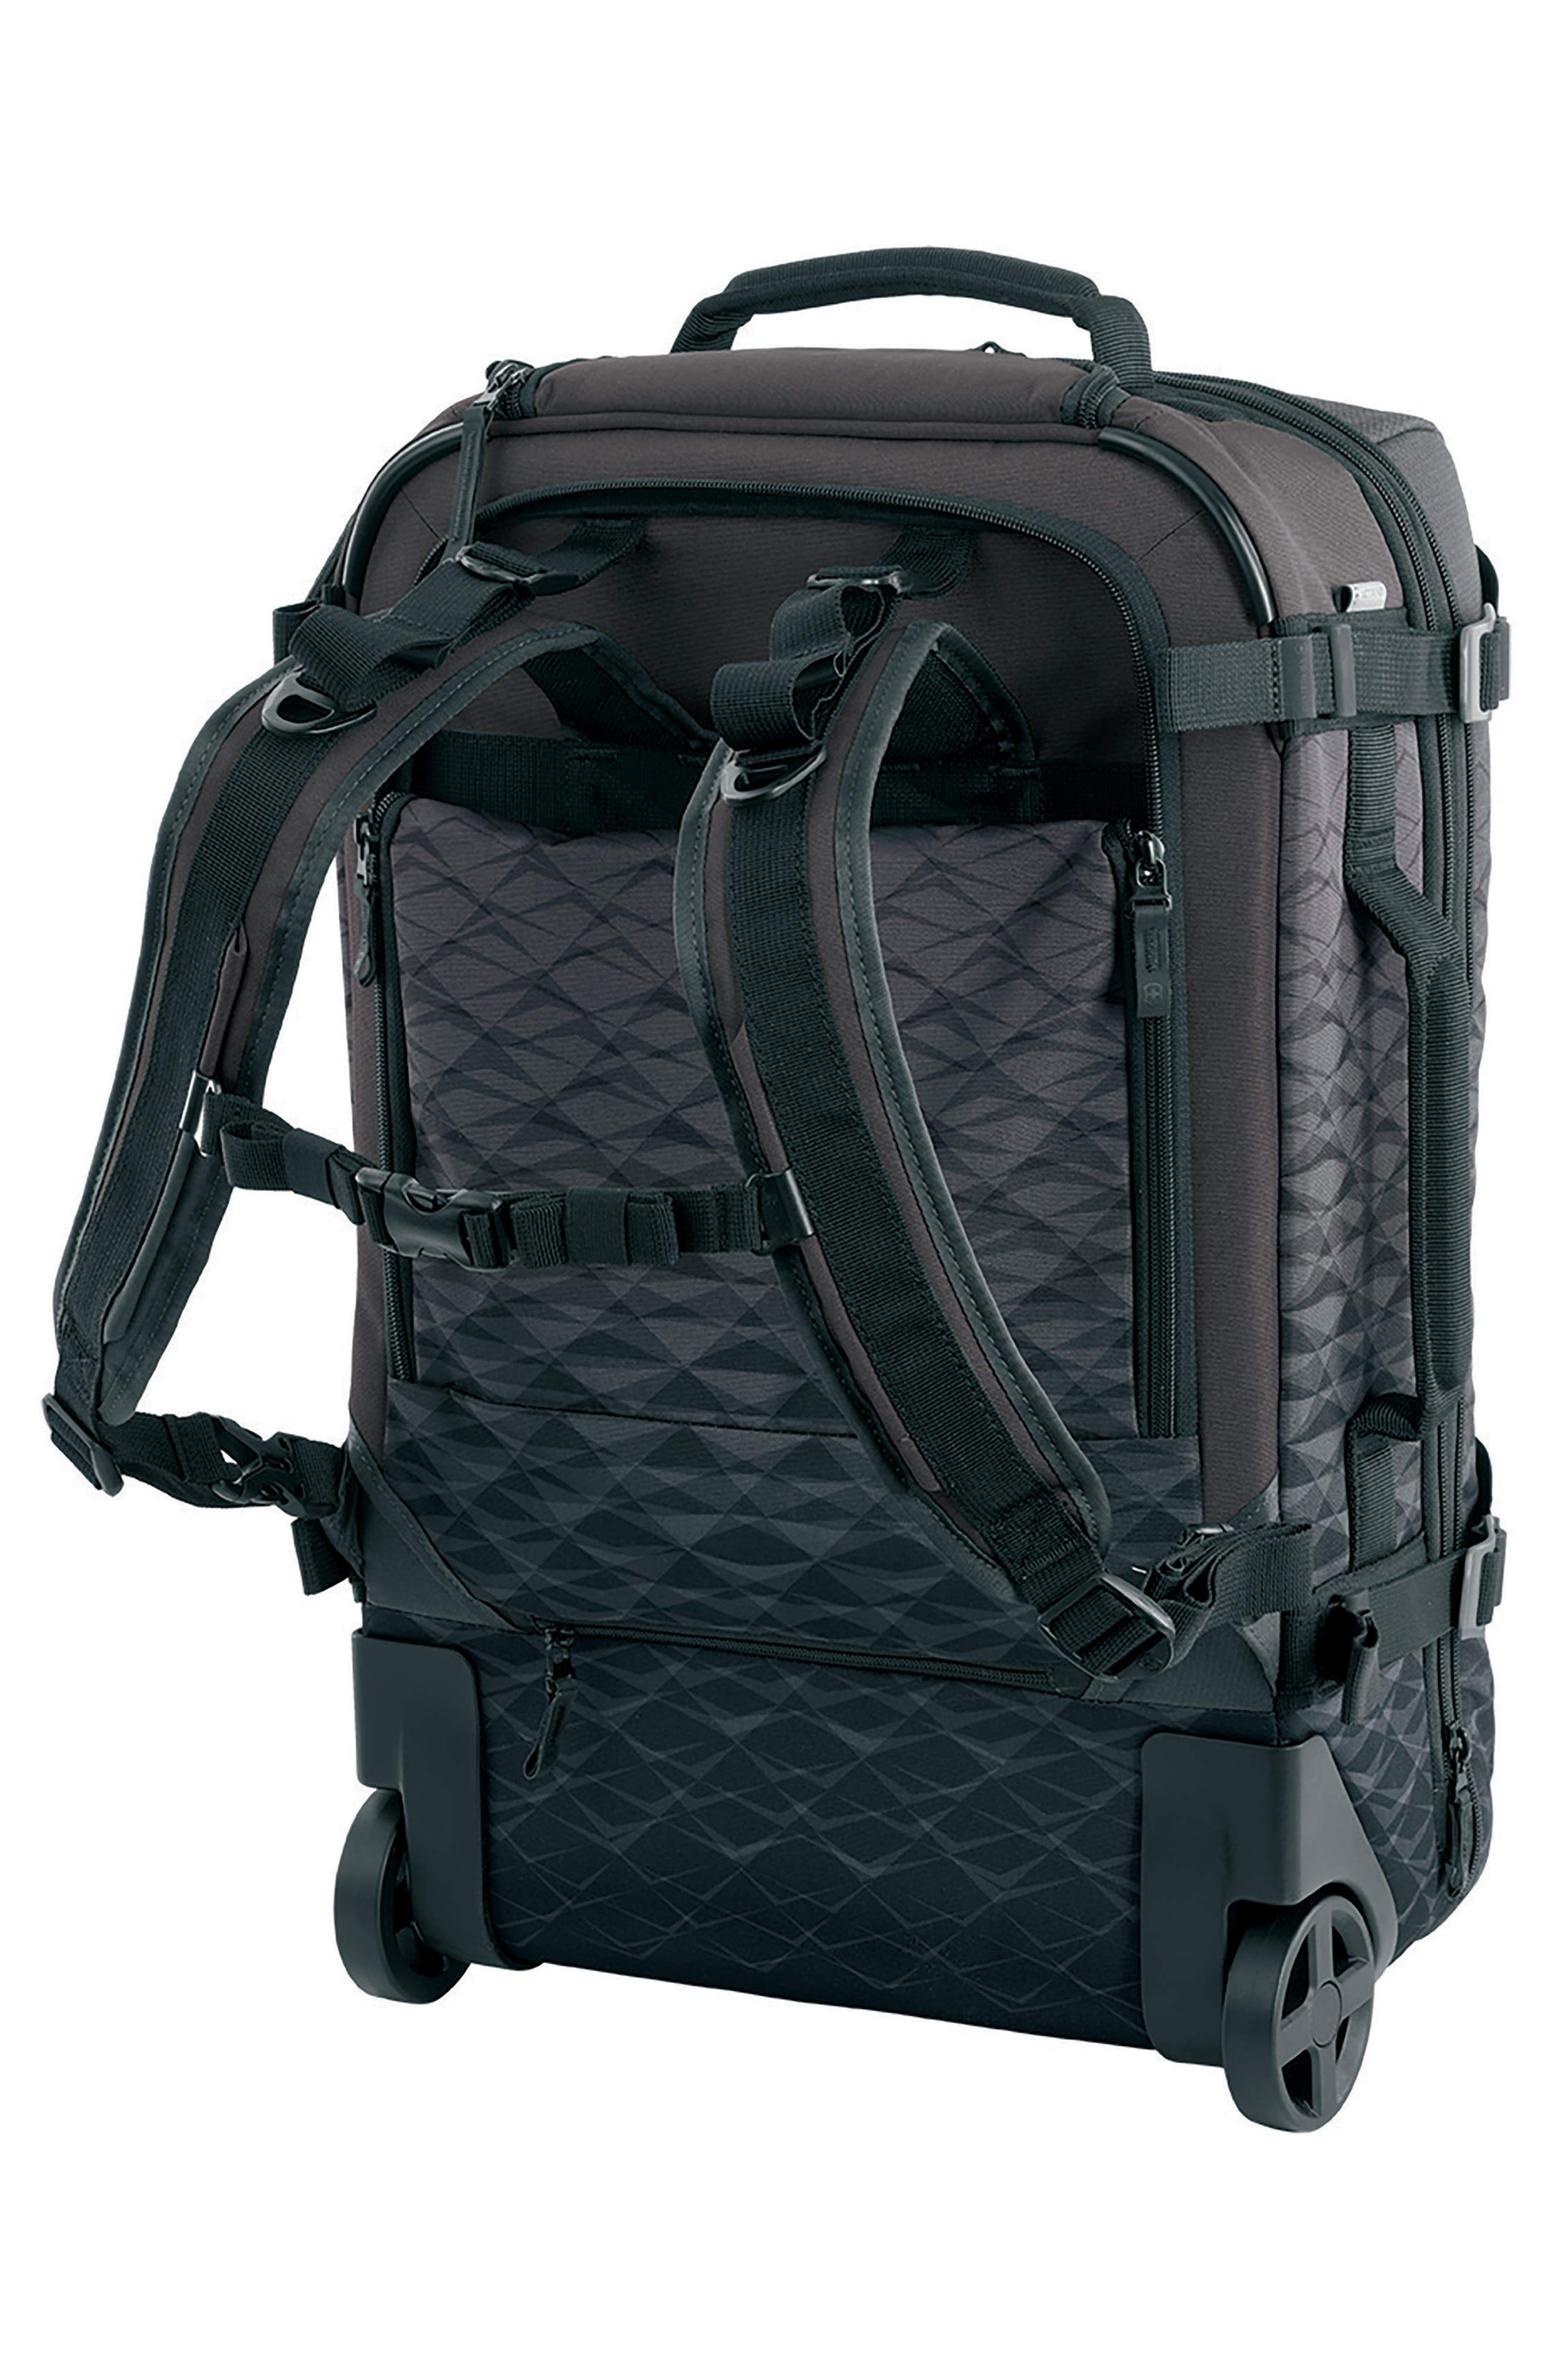 VX Touring 23-Inch Convertible Carry-On,                             Alternate thumbnail 3, color,                             ANTHRACITE